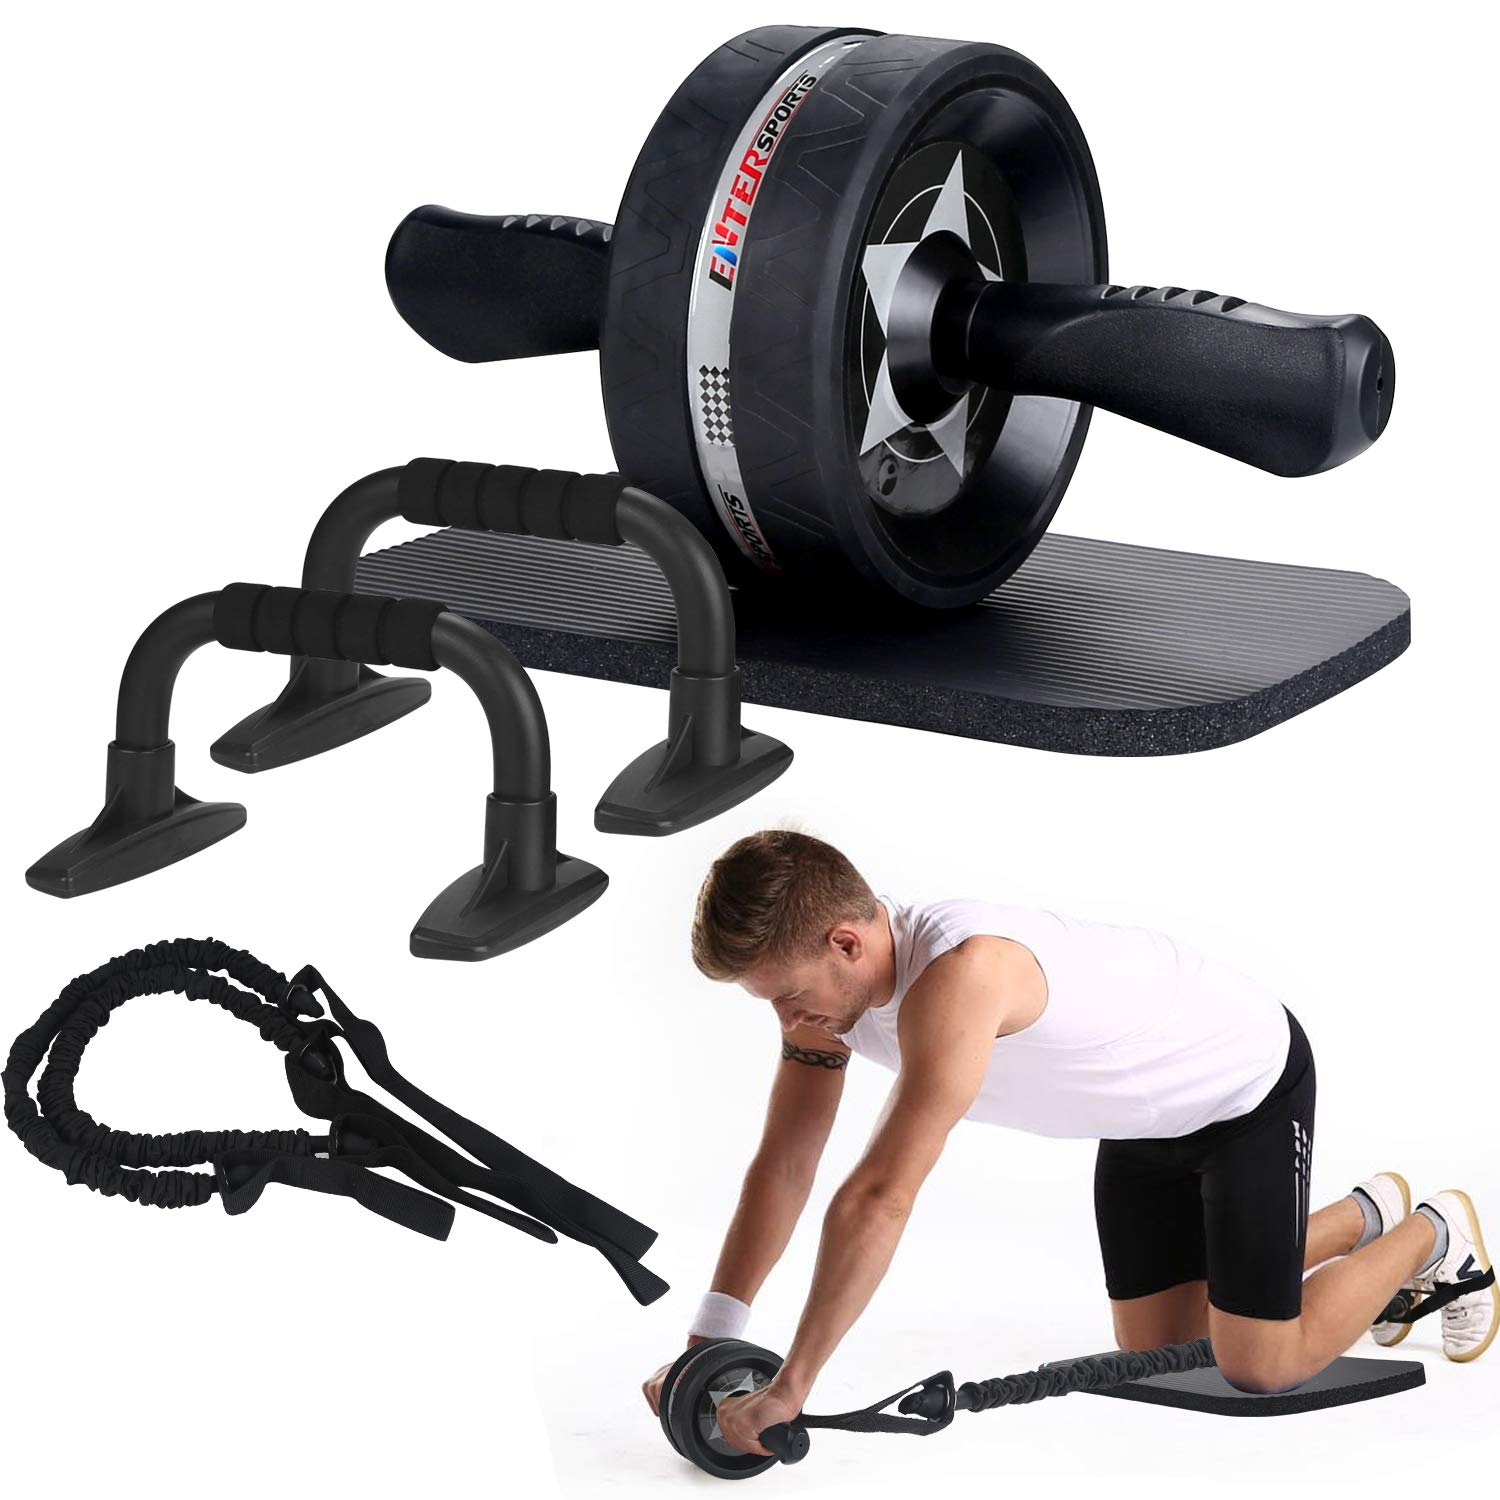 EnterSports AB Wheel Roller, 6-in-1 Exercise Roller Wheel Kit with Knee Pad, Resistance Bands, Pad Push Up Bars Handles…